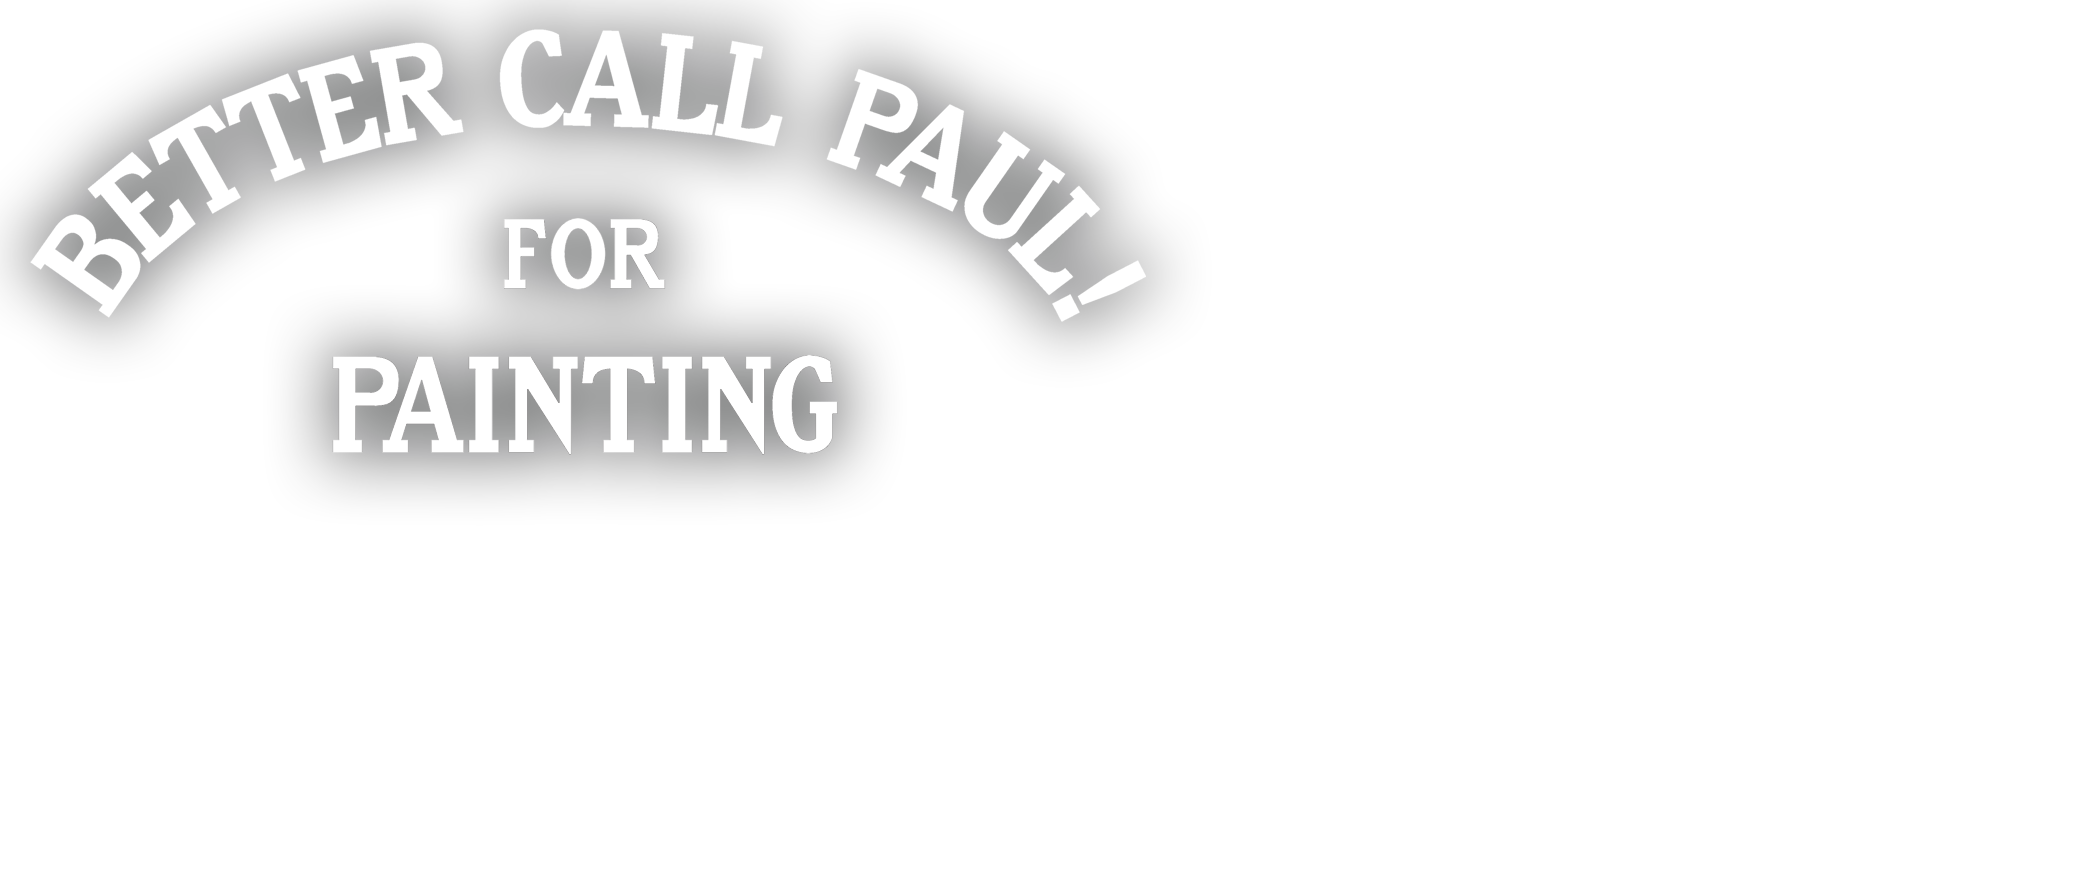 BetterCallPaul_logo_rev2.png